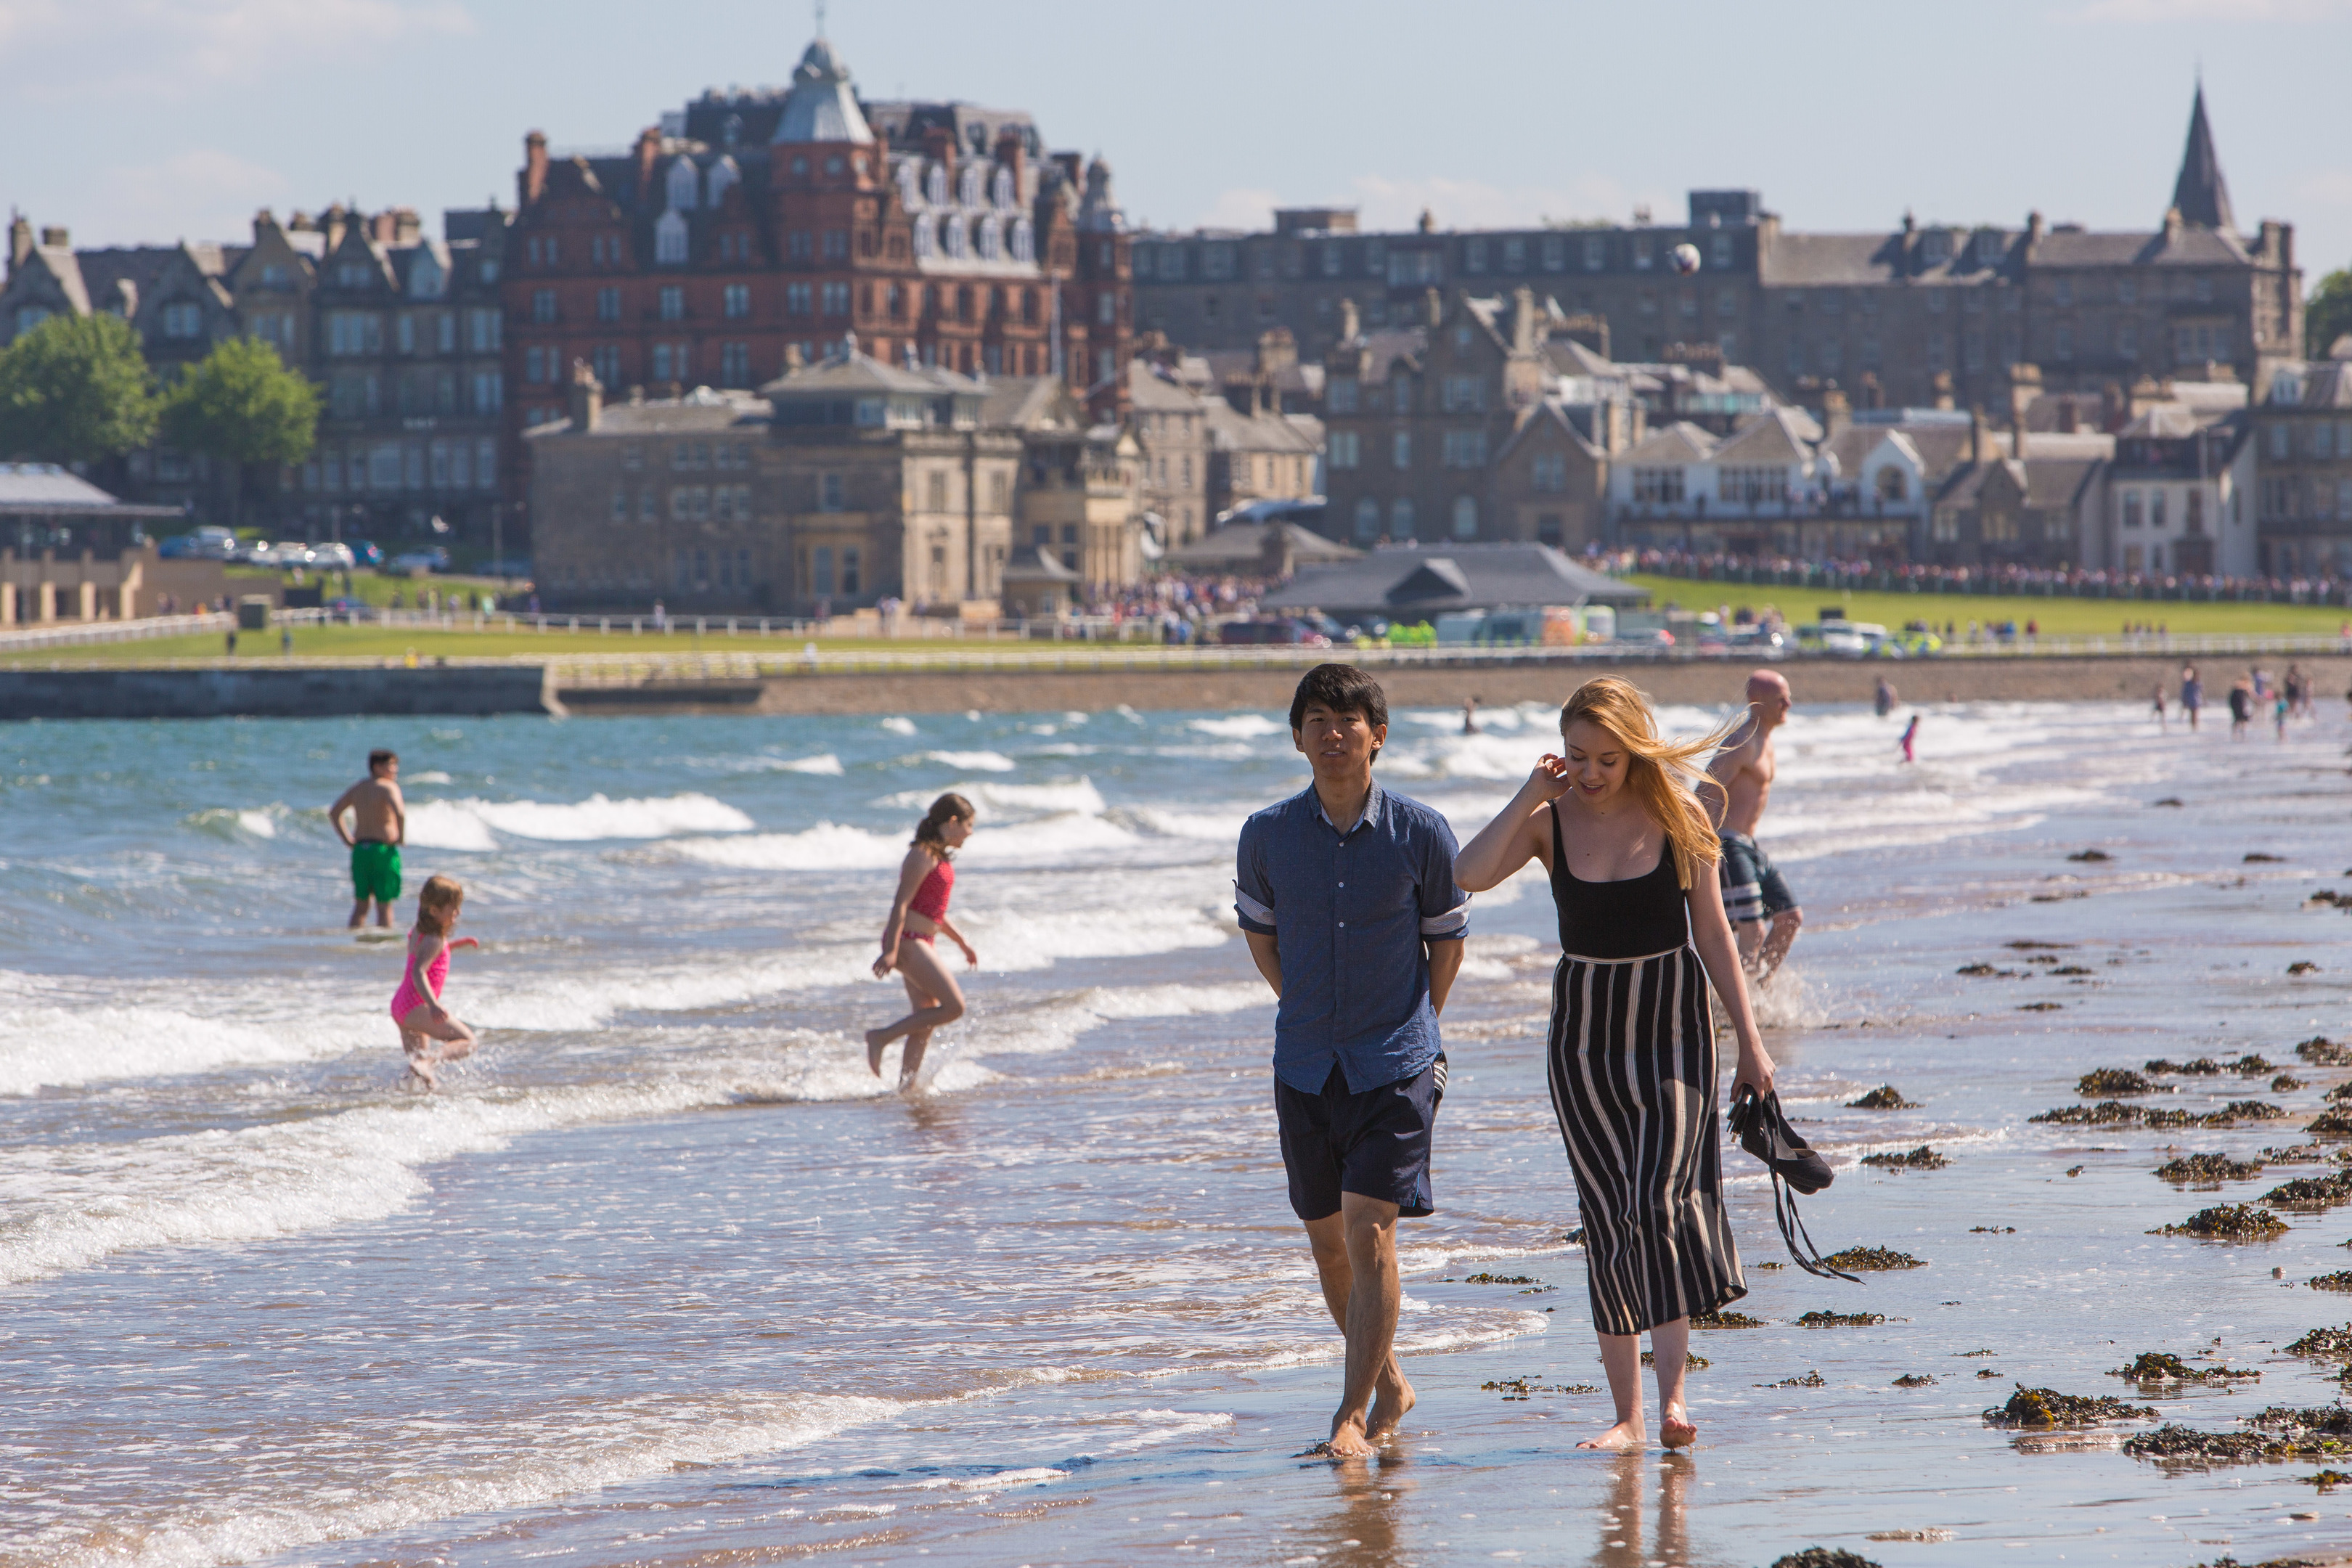 West Sands beach in St Andrews earlier this year.